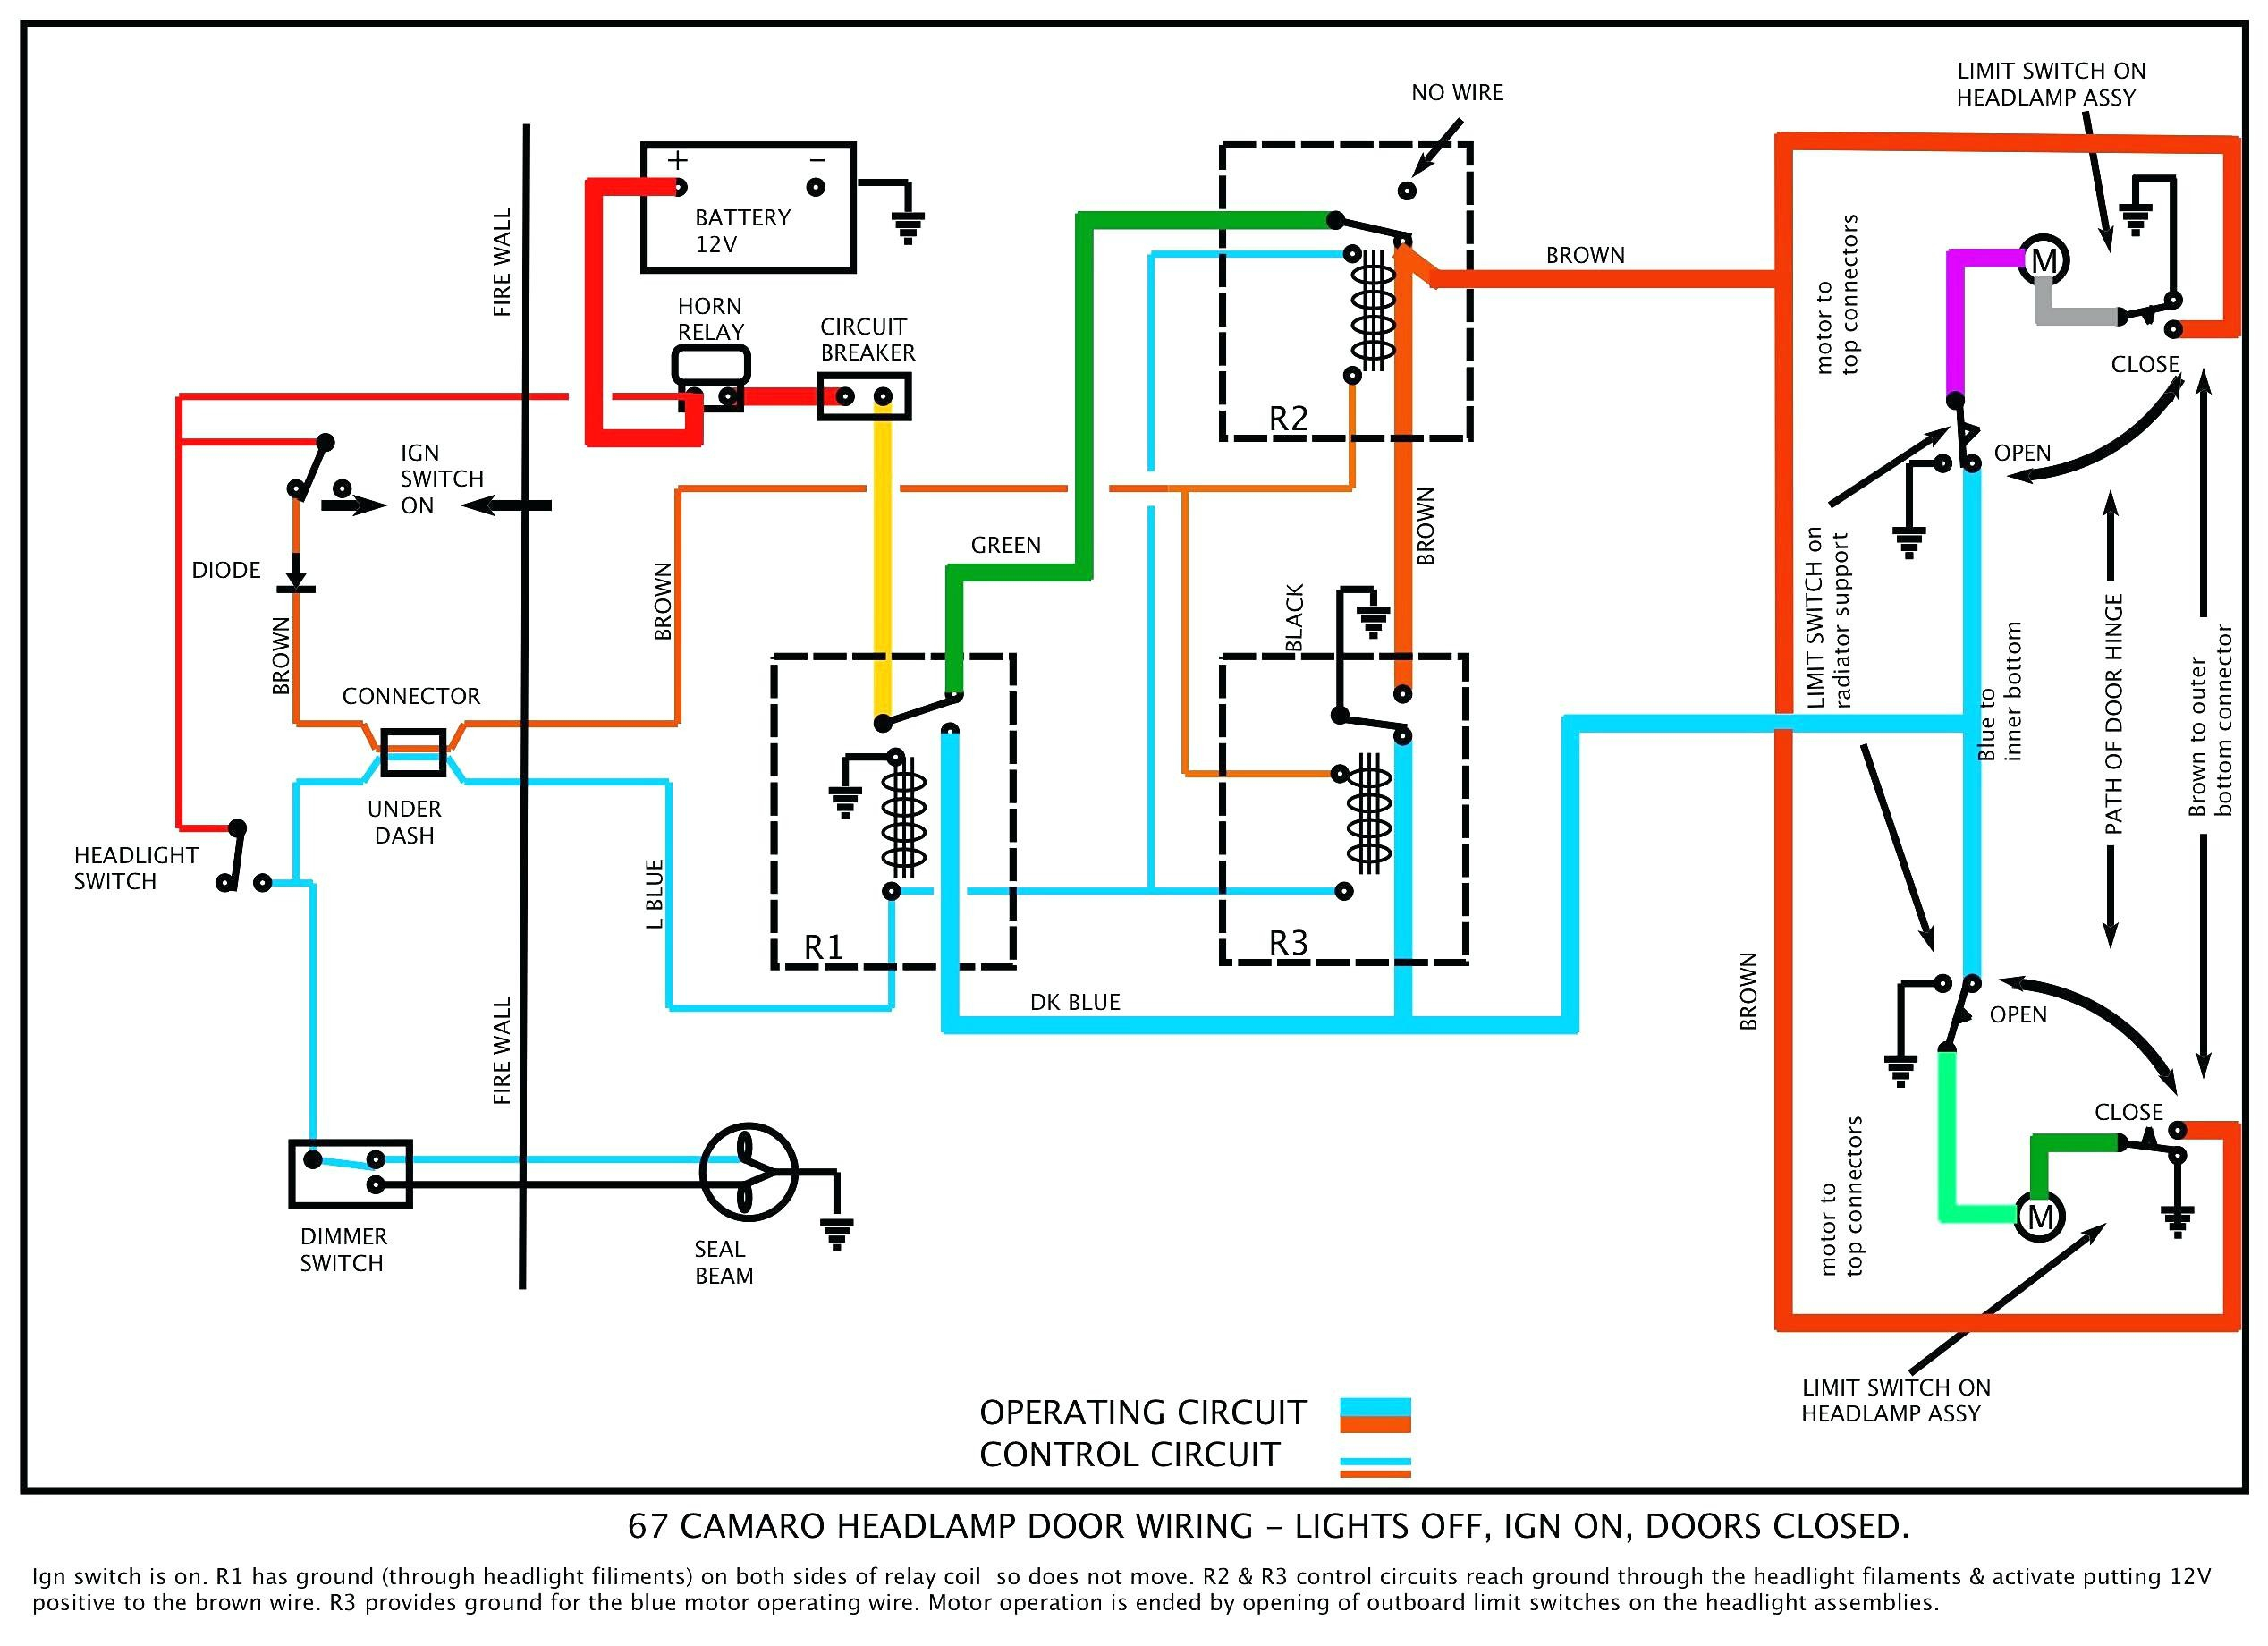 Genuine Bosch Horn Relay Wiring Diagram 11962 In | Philteg.in - Bosch Relay Wiring Diagram